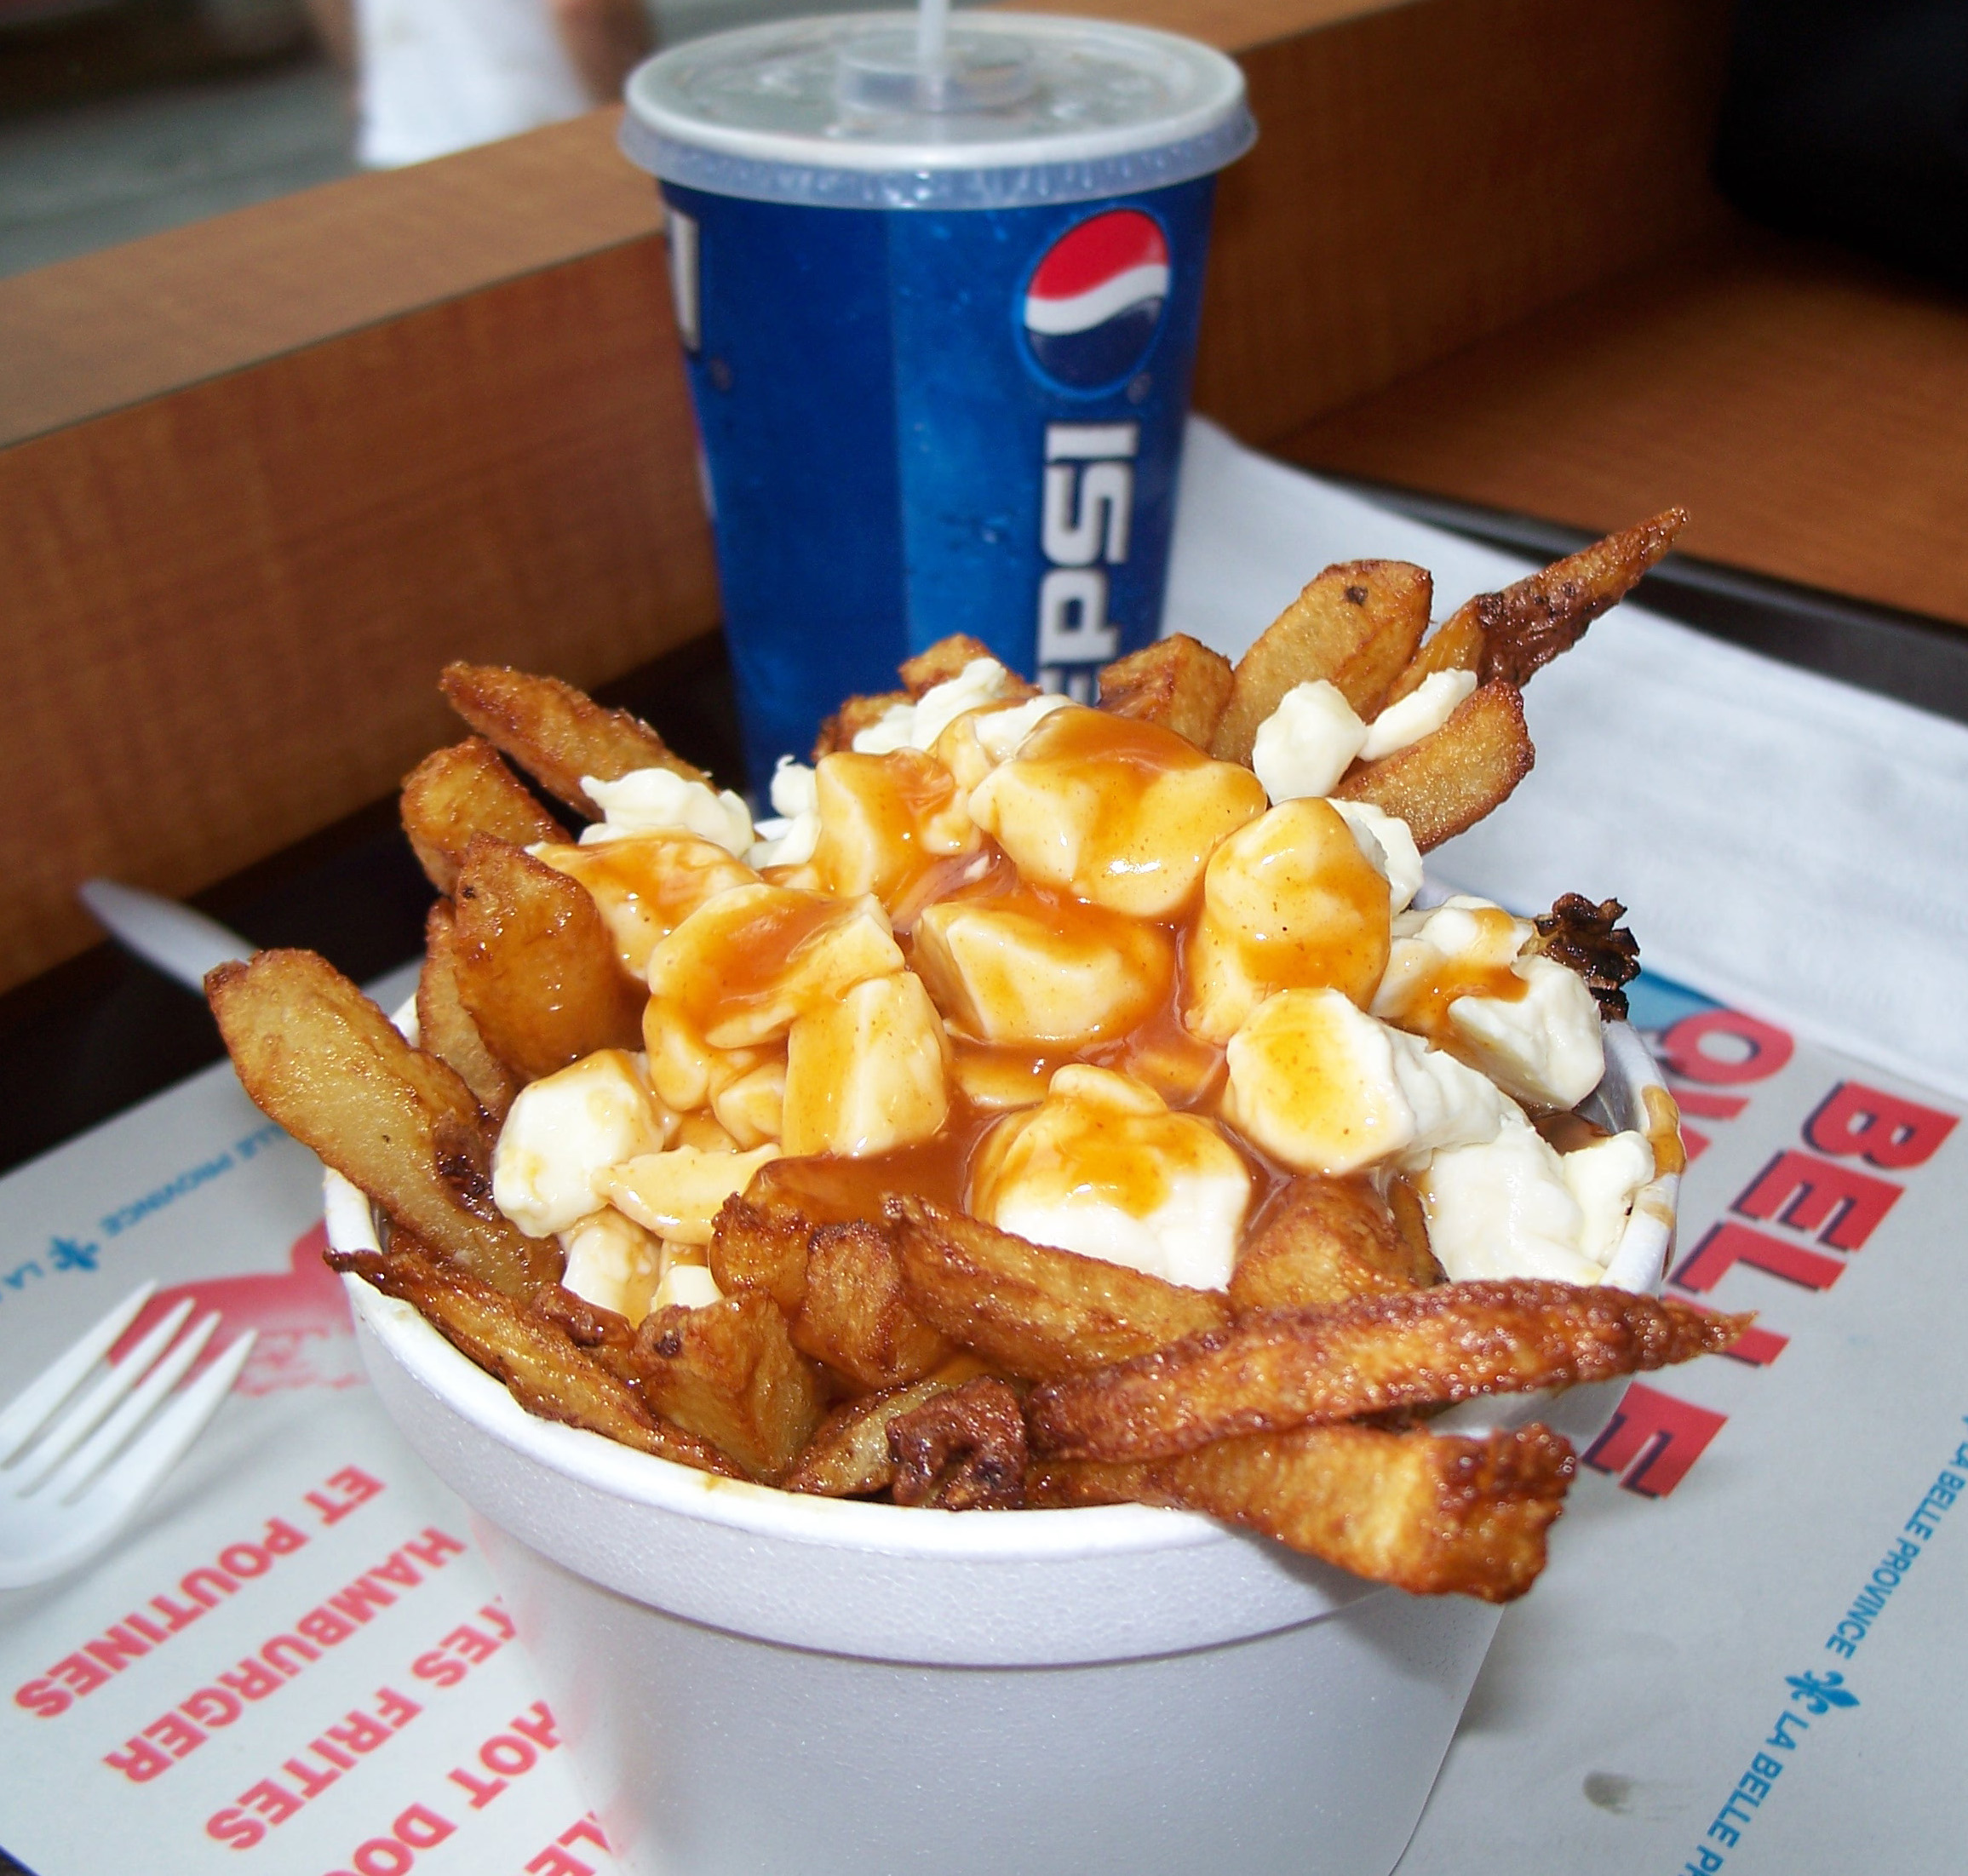 THE 11 BEST POUTINE SPOTS IN QUEBEC (Thrillist) - Amazing poutine isn't just in Montreal. Take a poutine-focused tour of La Belle Province with this in-depth food-feature highlighting the best poutine spots in Quebec you've never heard of.Read the full piece here →Read more of Michael's work with Thrillist here →